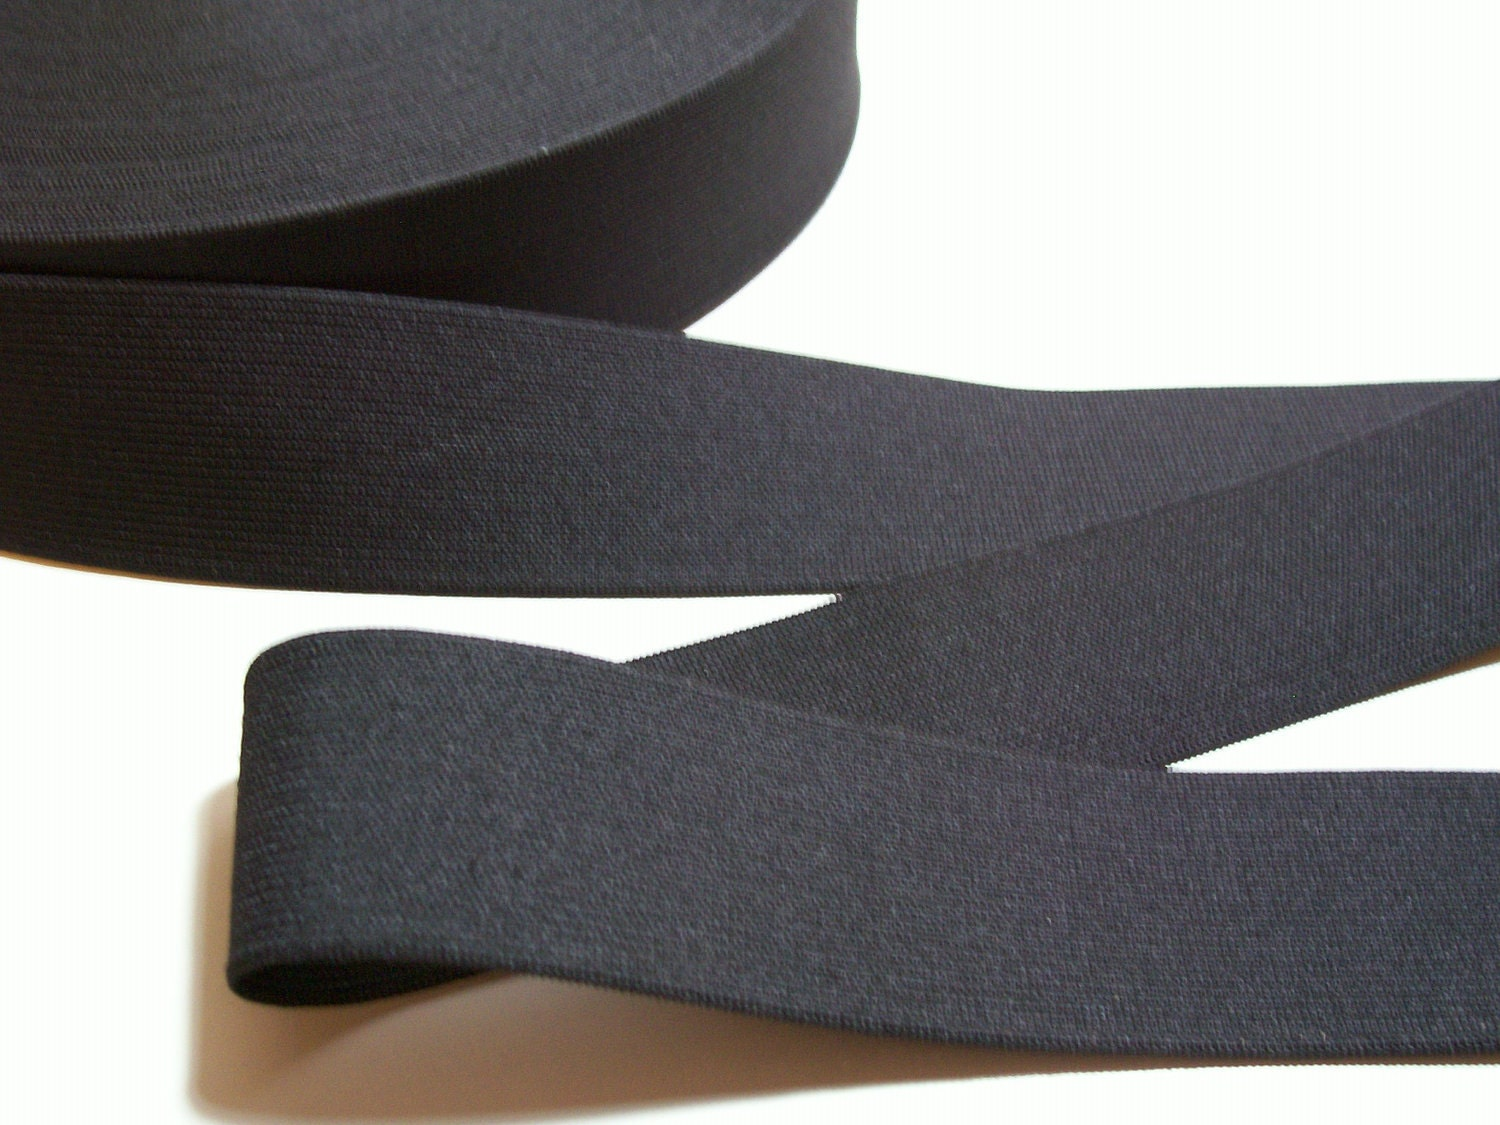 Black Heavy Duty Elastic 1 15/16 inches wide x by GriffithGardens